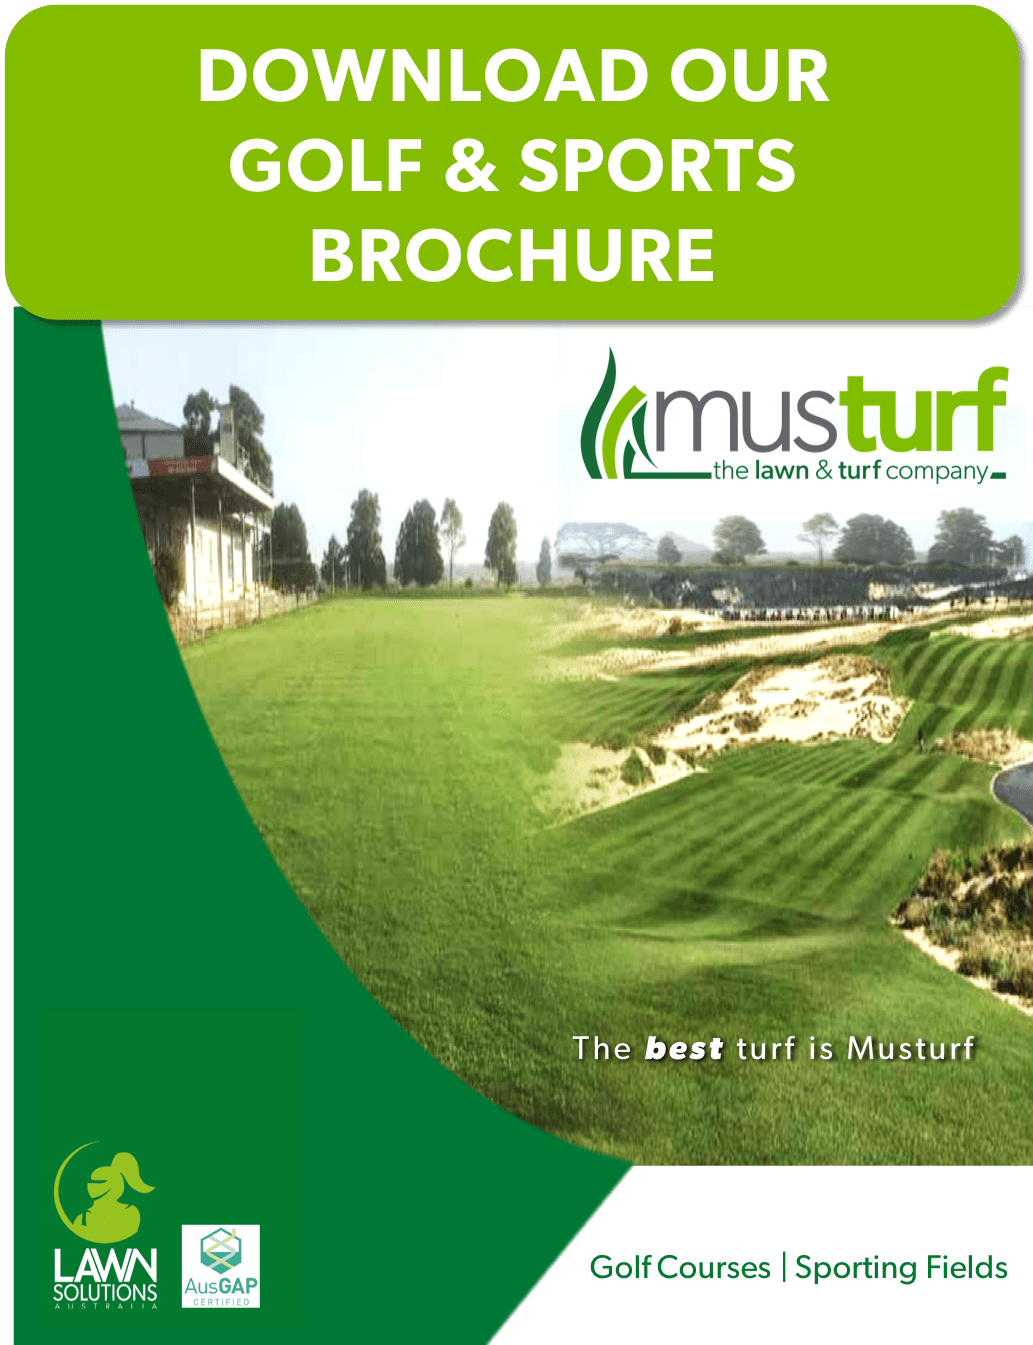 Lawn Supply Installation and Care Services | Golfing and Sports Industry